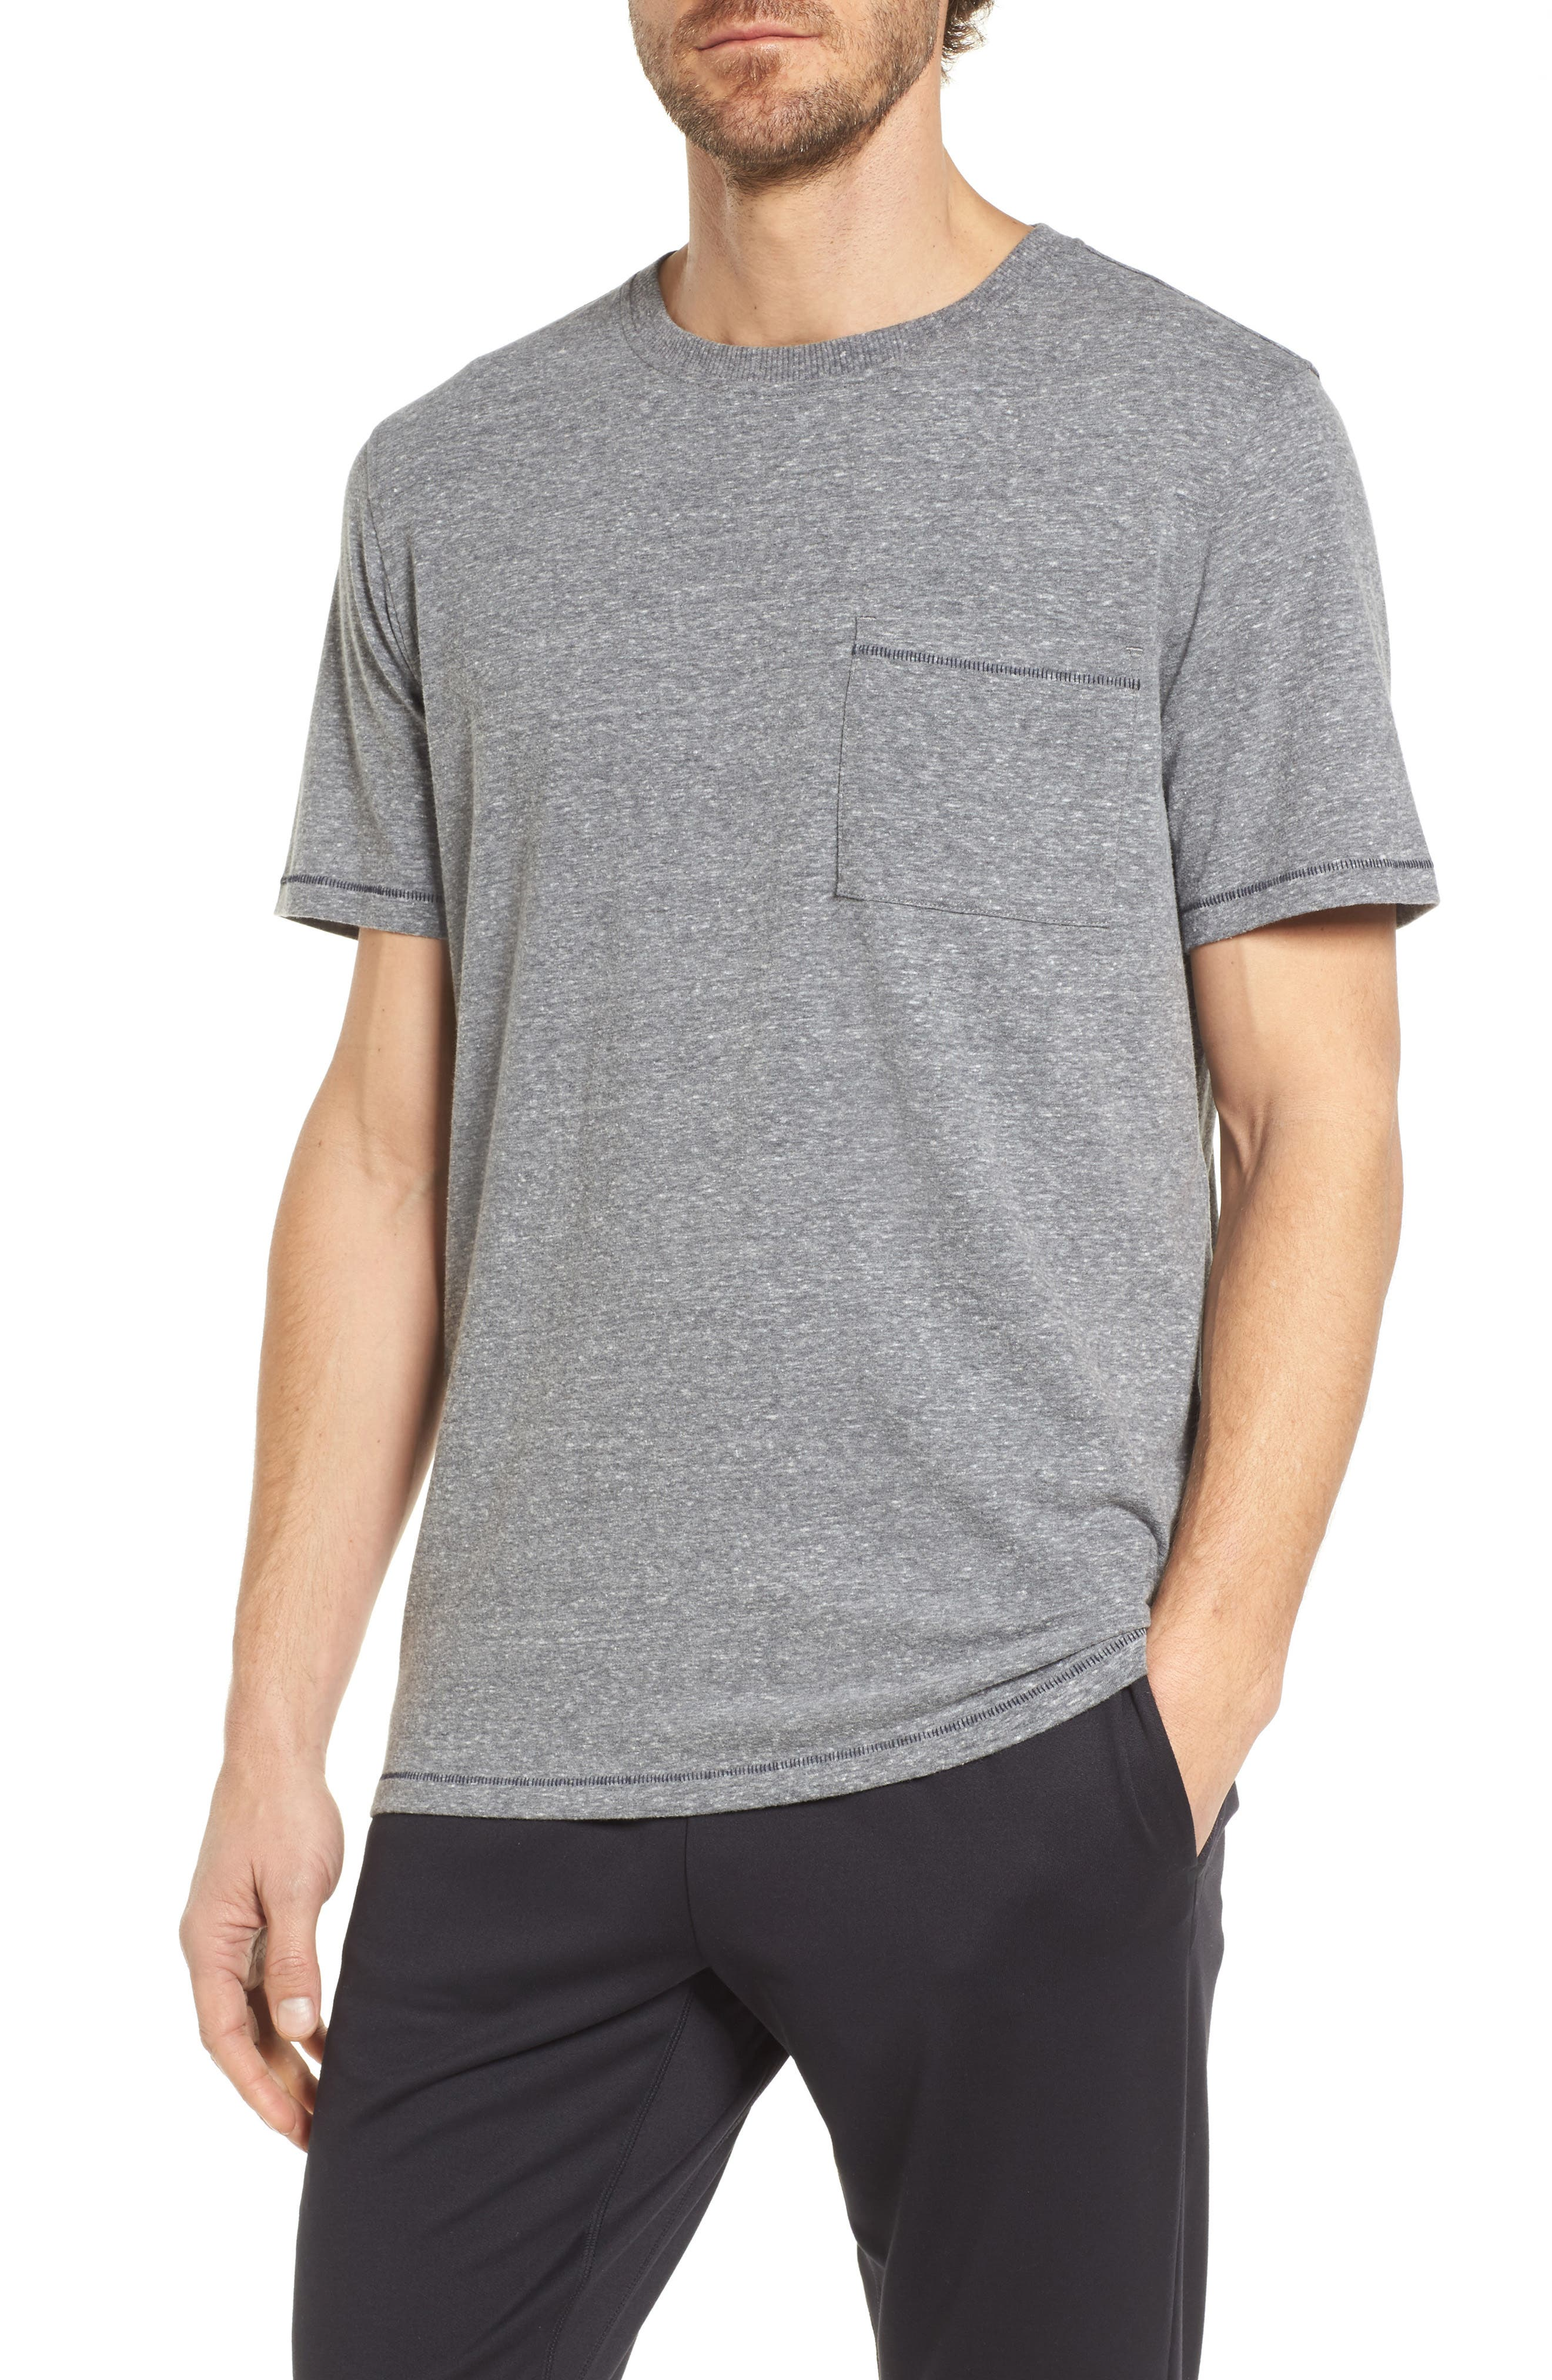 Benjamin Crewneck T-Shirt,                             Main thumbnail 1, color,                             Grey Heather